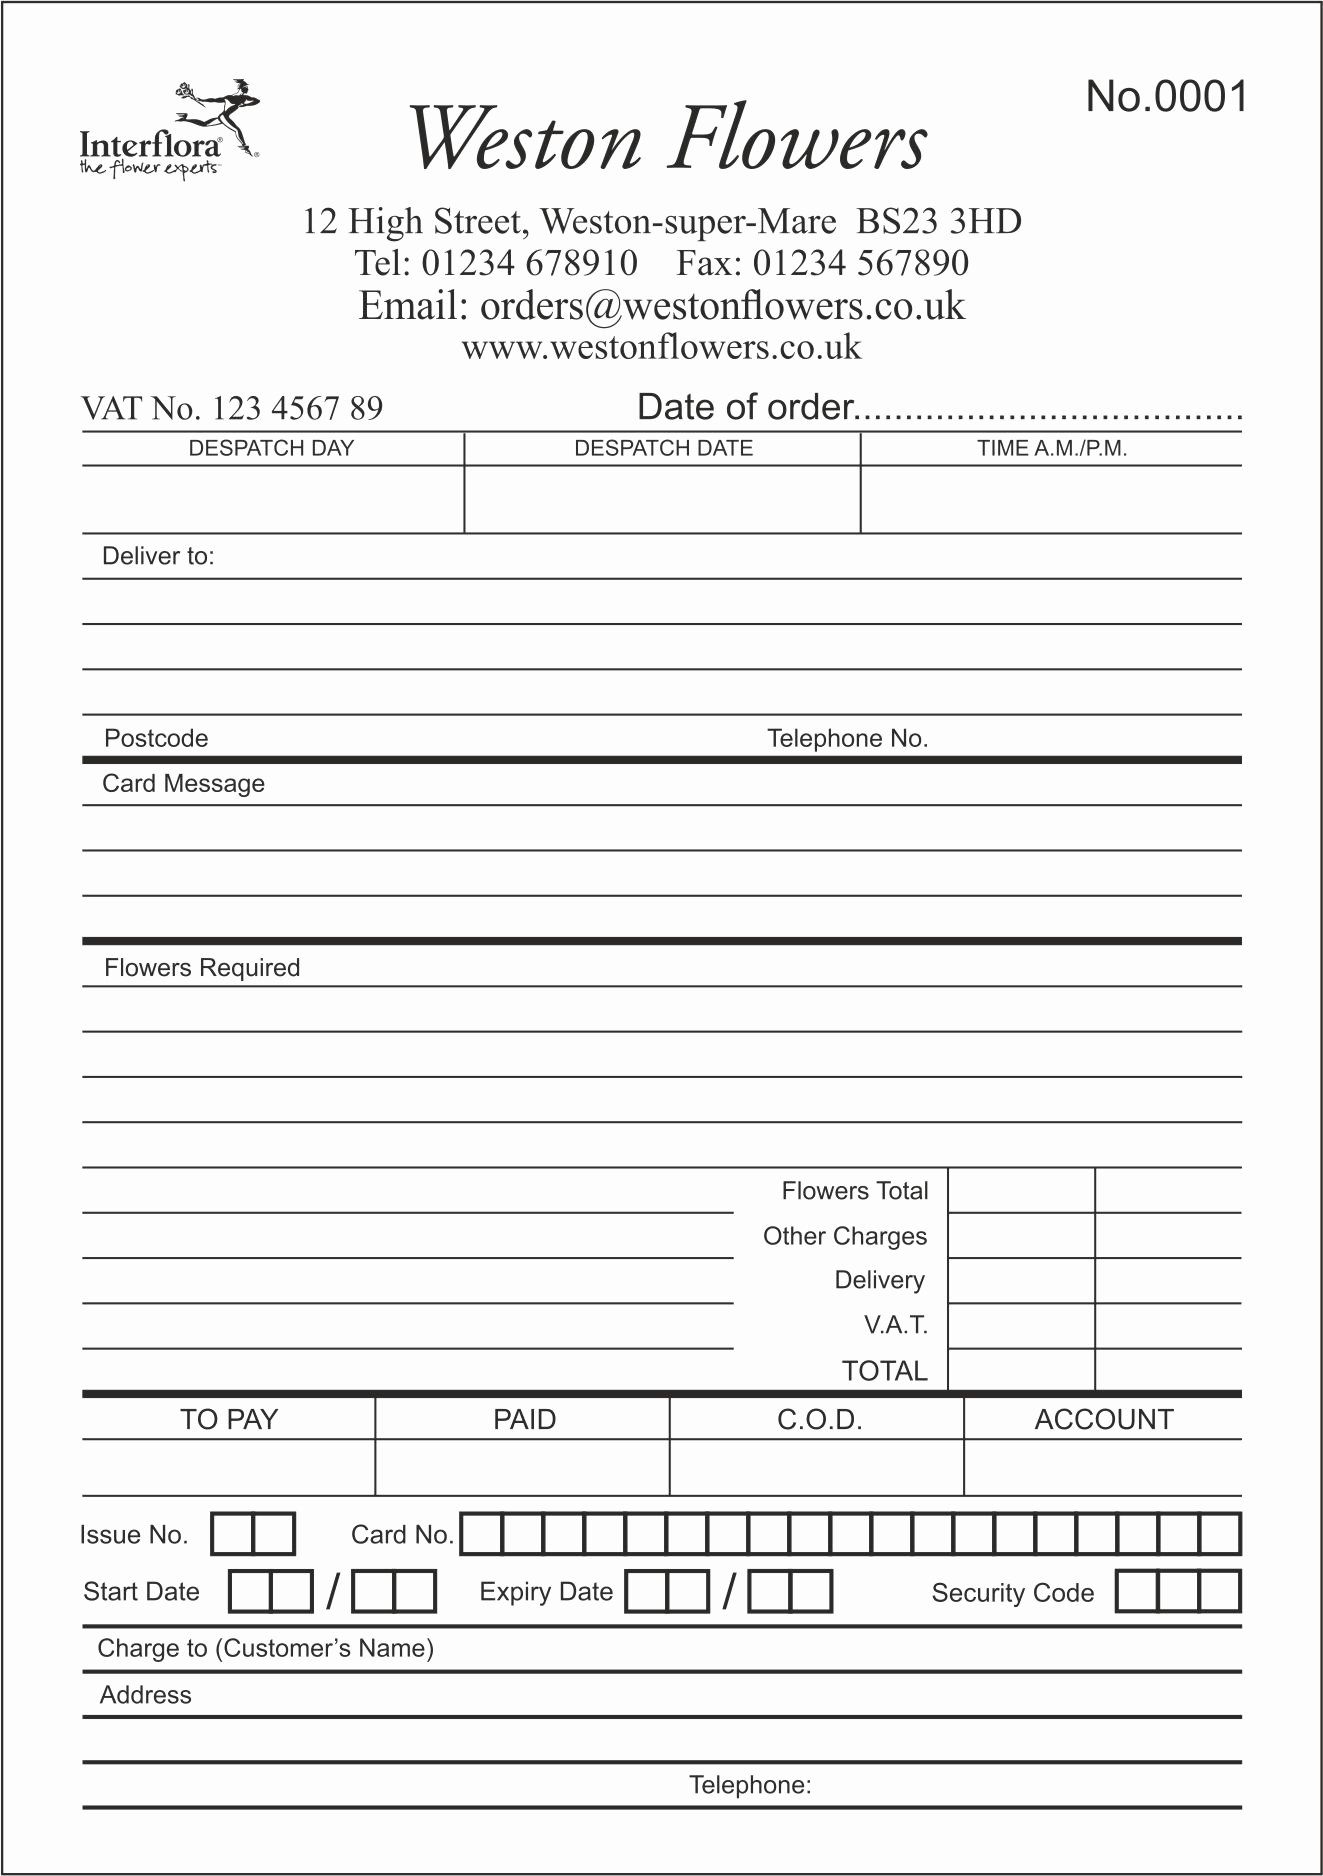 Wedding Flowers order form Template Beautiful Flower order form to Pin On Pinterest Pinsdaddy